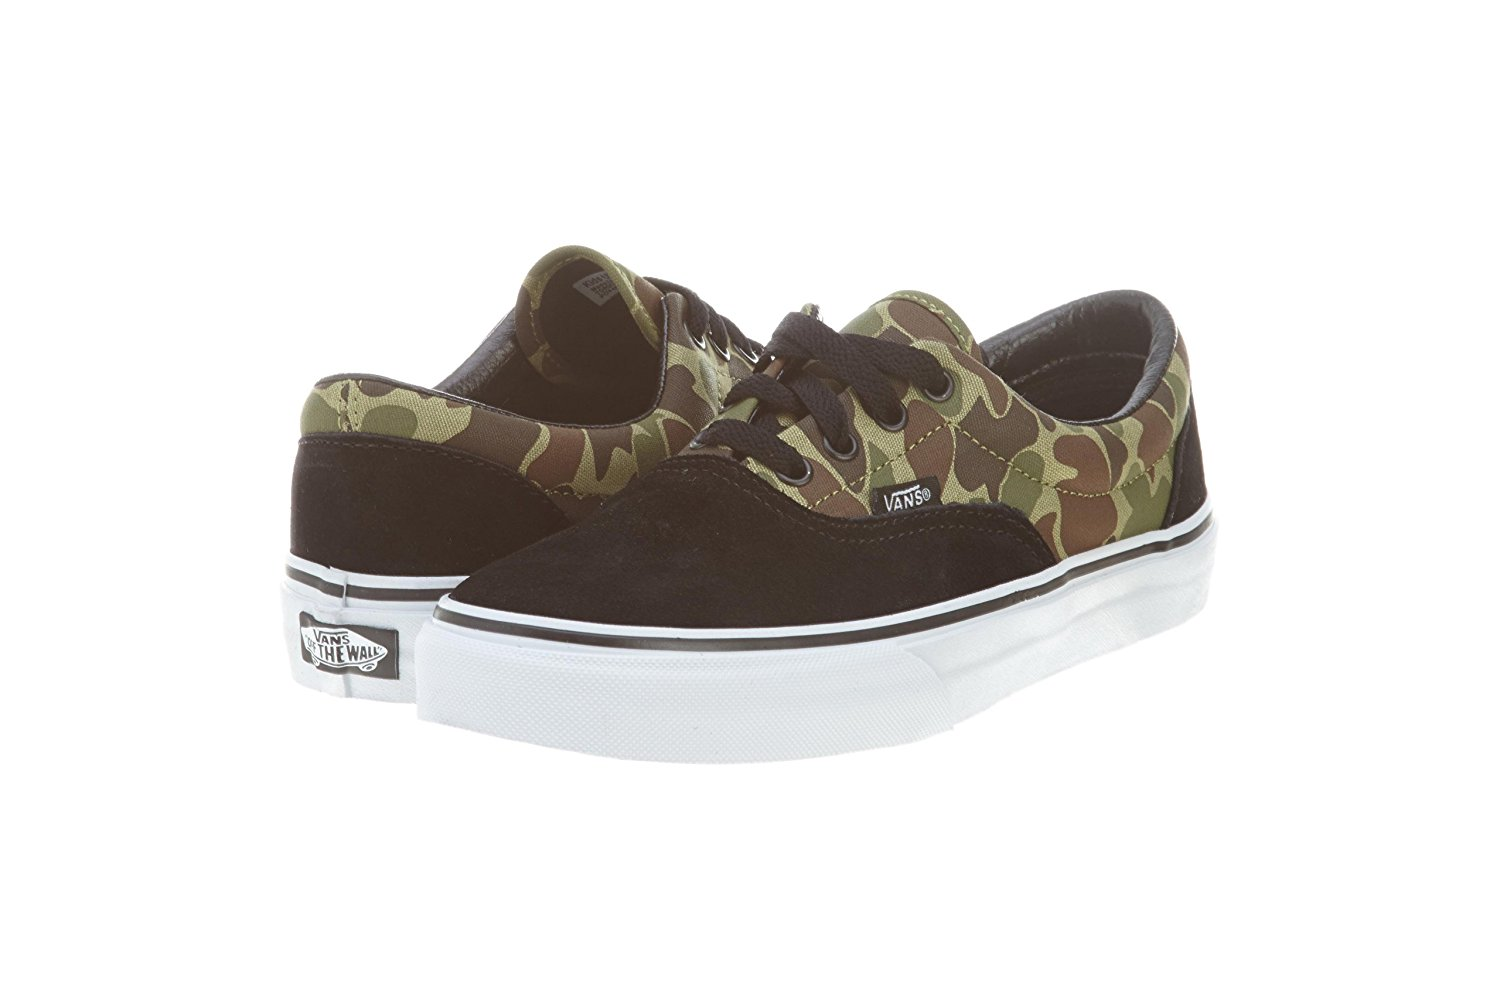 bb3ec5575fc Get Quotations · Vans Era Little Kids Style   Vn-Oqfj